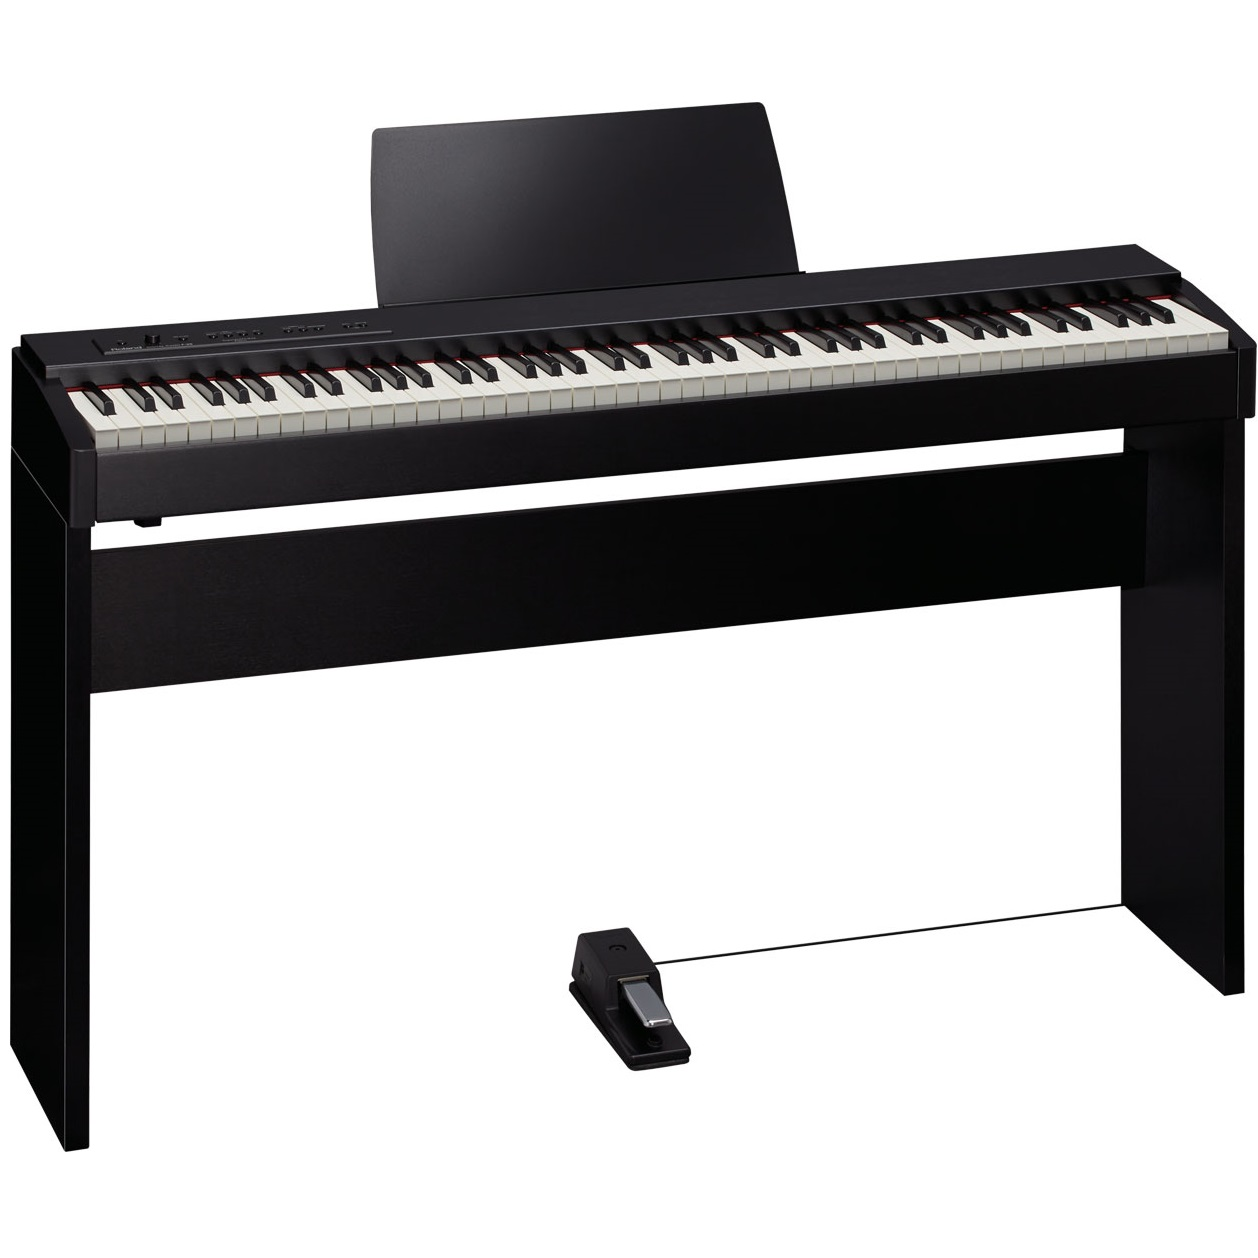 Piano Điện Roland F-20